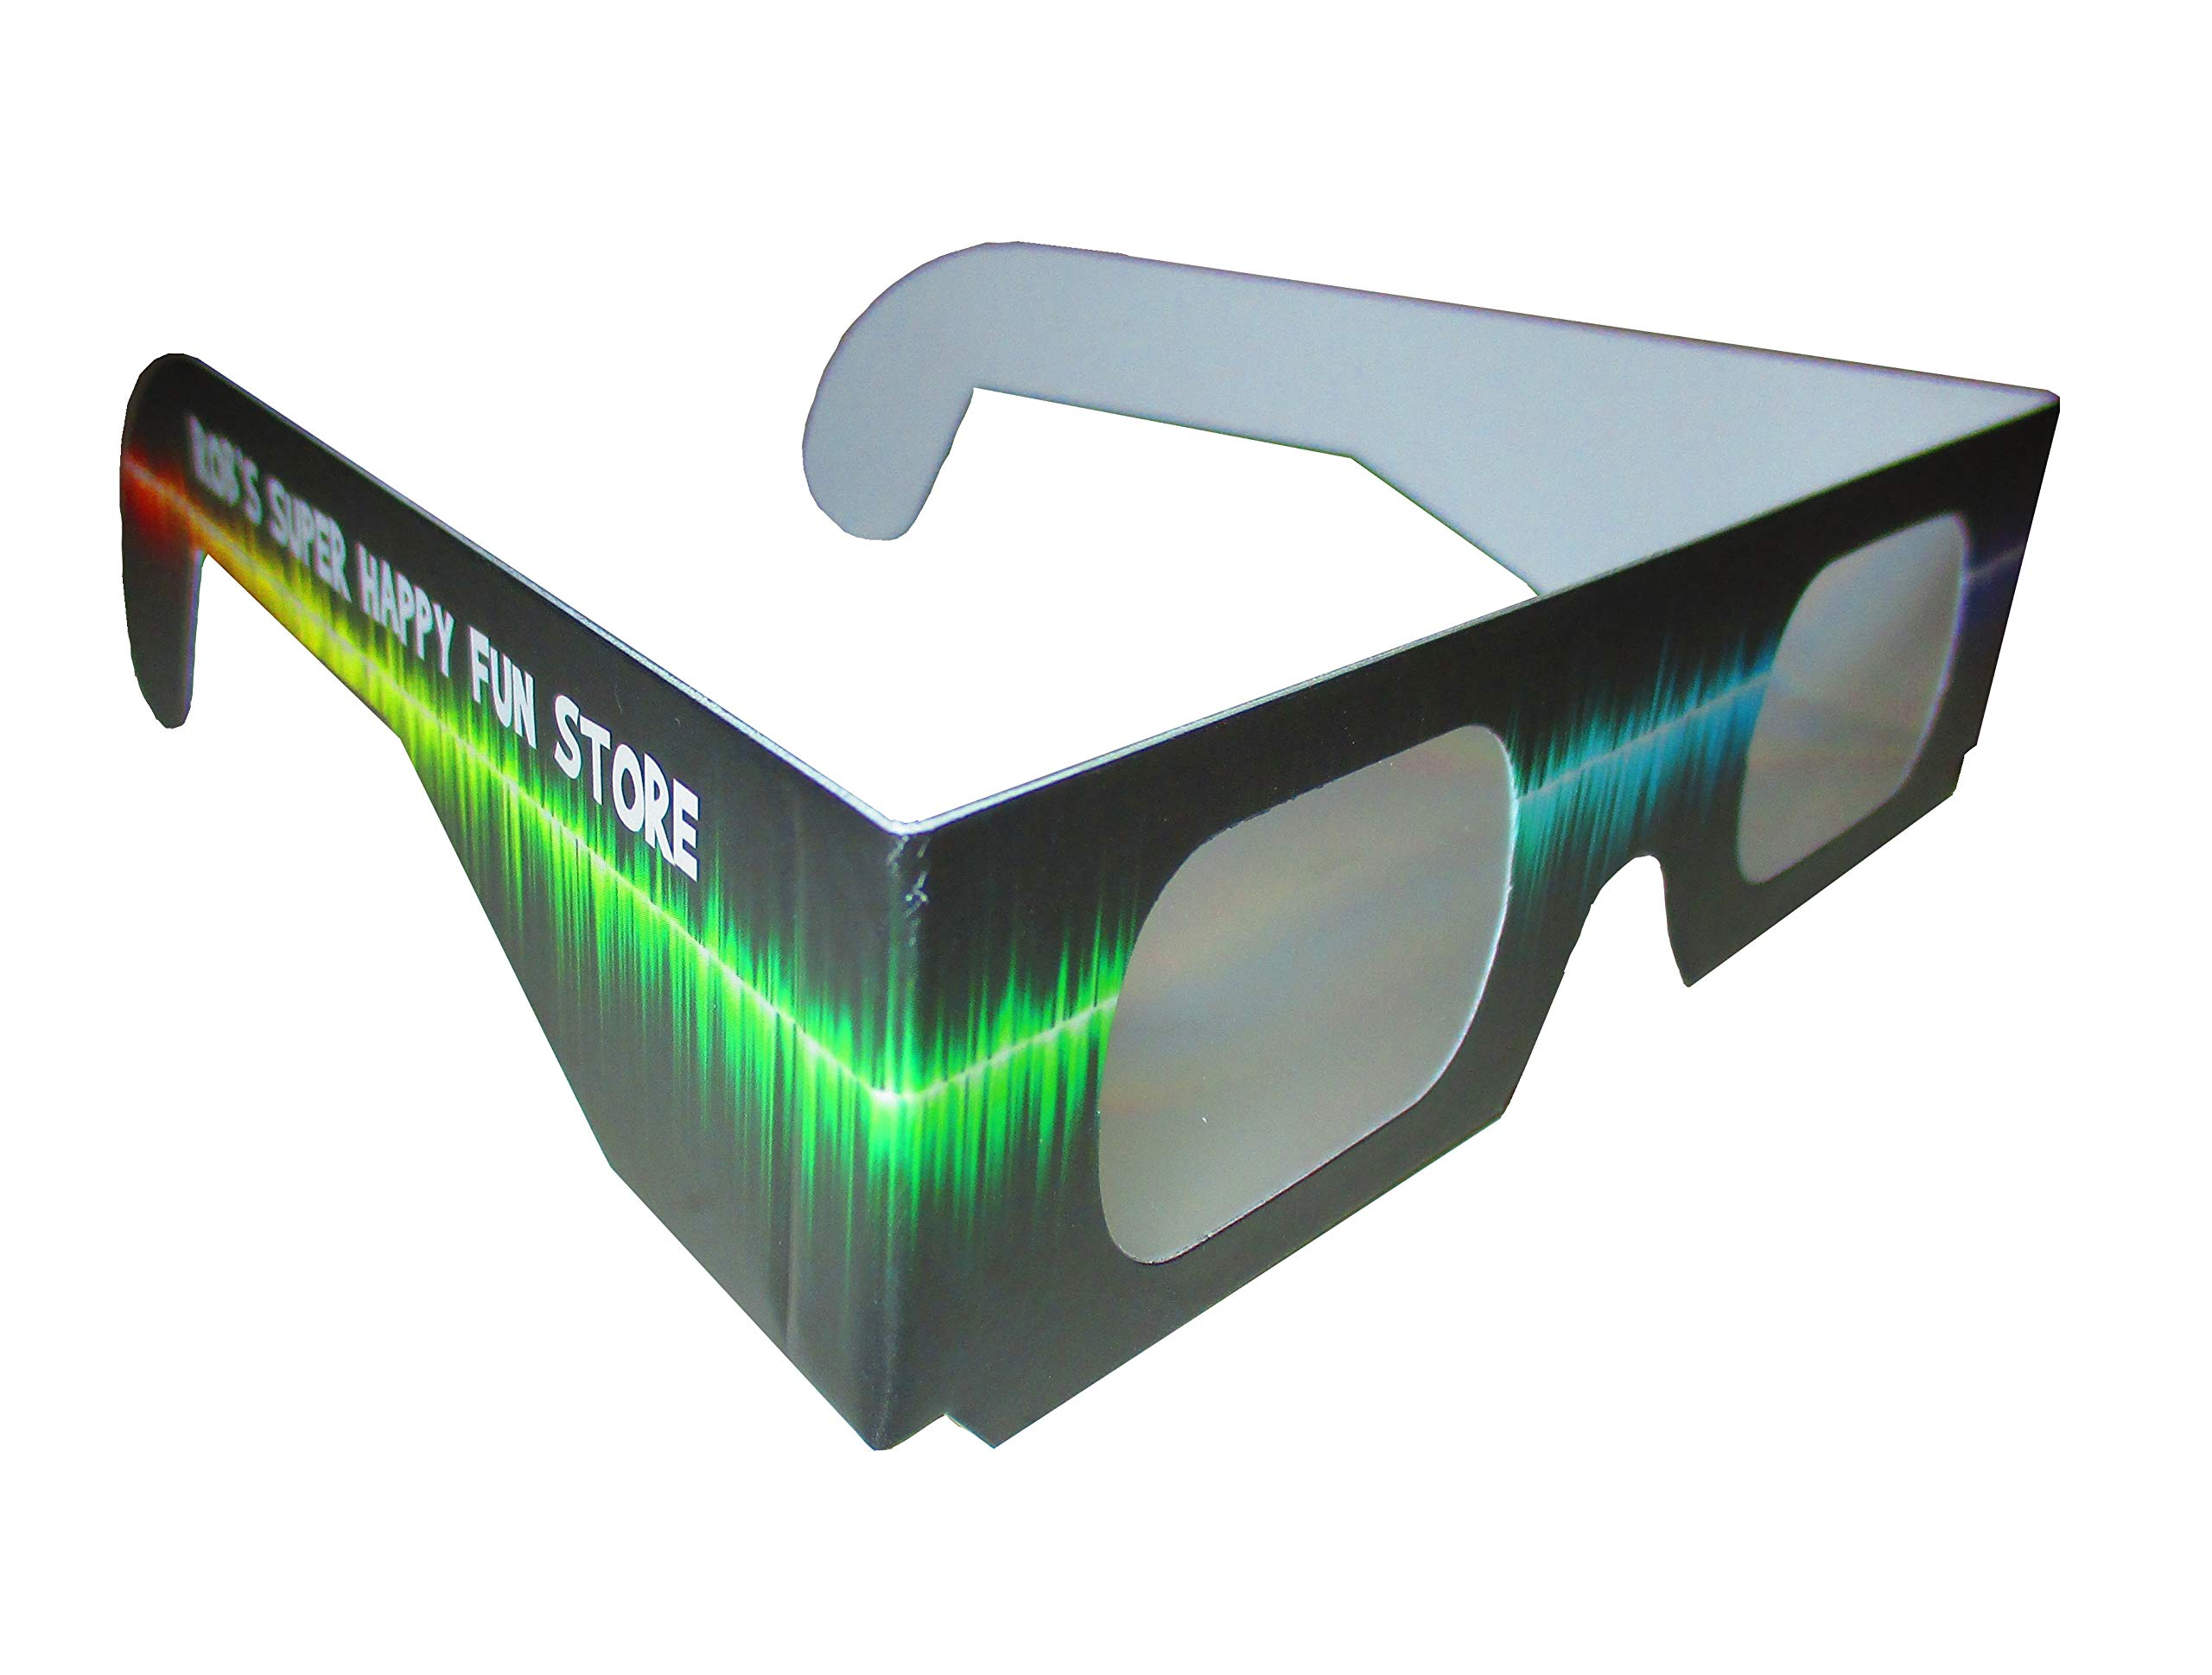 Fireworks Diffraction Glasses -25 Pair Rainbow Hearts (Plain White Frames) plus 25 Pair Starbursts (Rave Waves Frames) - 50 pack total - for Fireworks, Holiday Lights, Wedding Receptions, Rave Events by Rob's Super Happy Fun Store (Image #6)